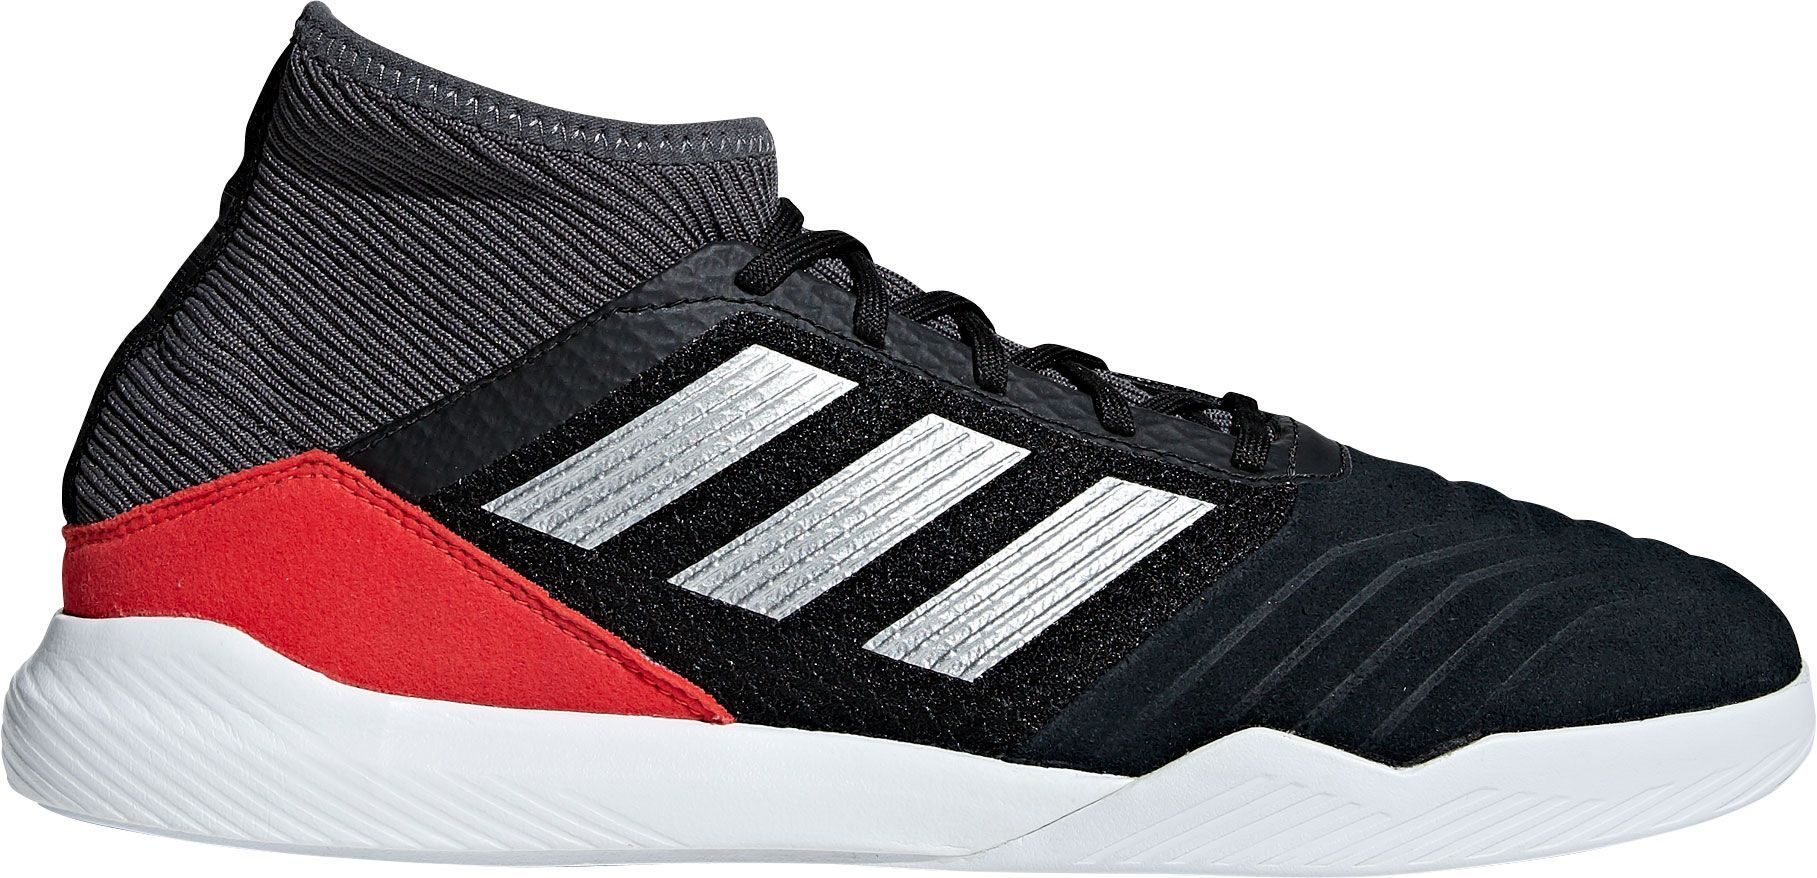 adidas Men's Predator 19.3 Soccer Trainers | Products in